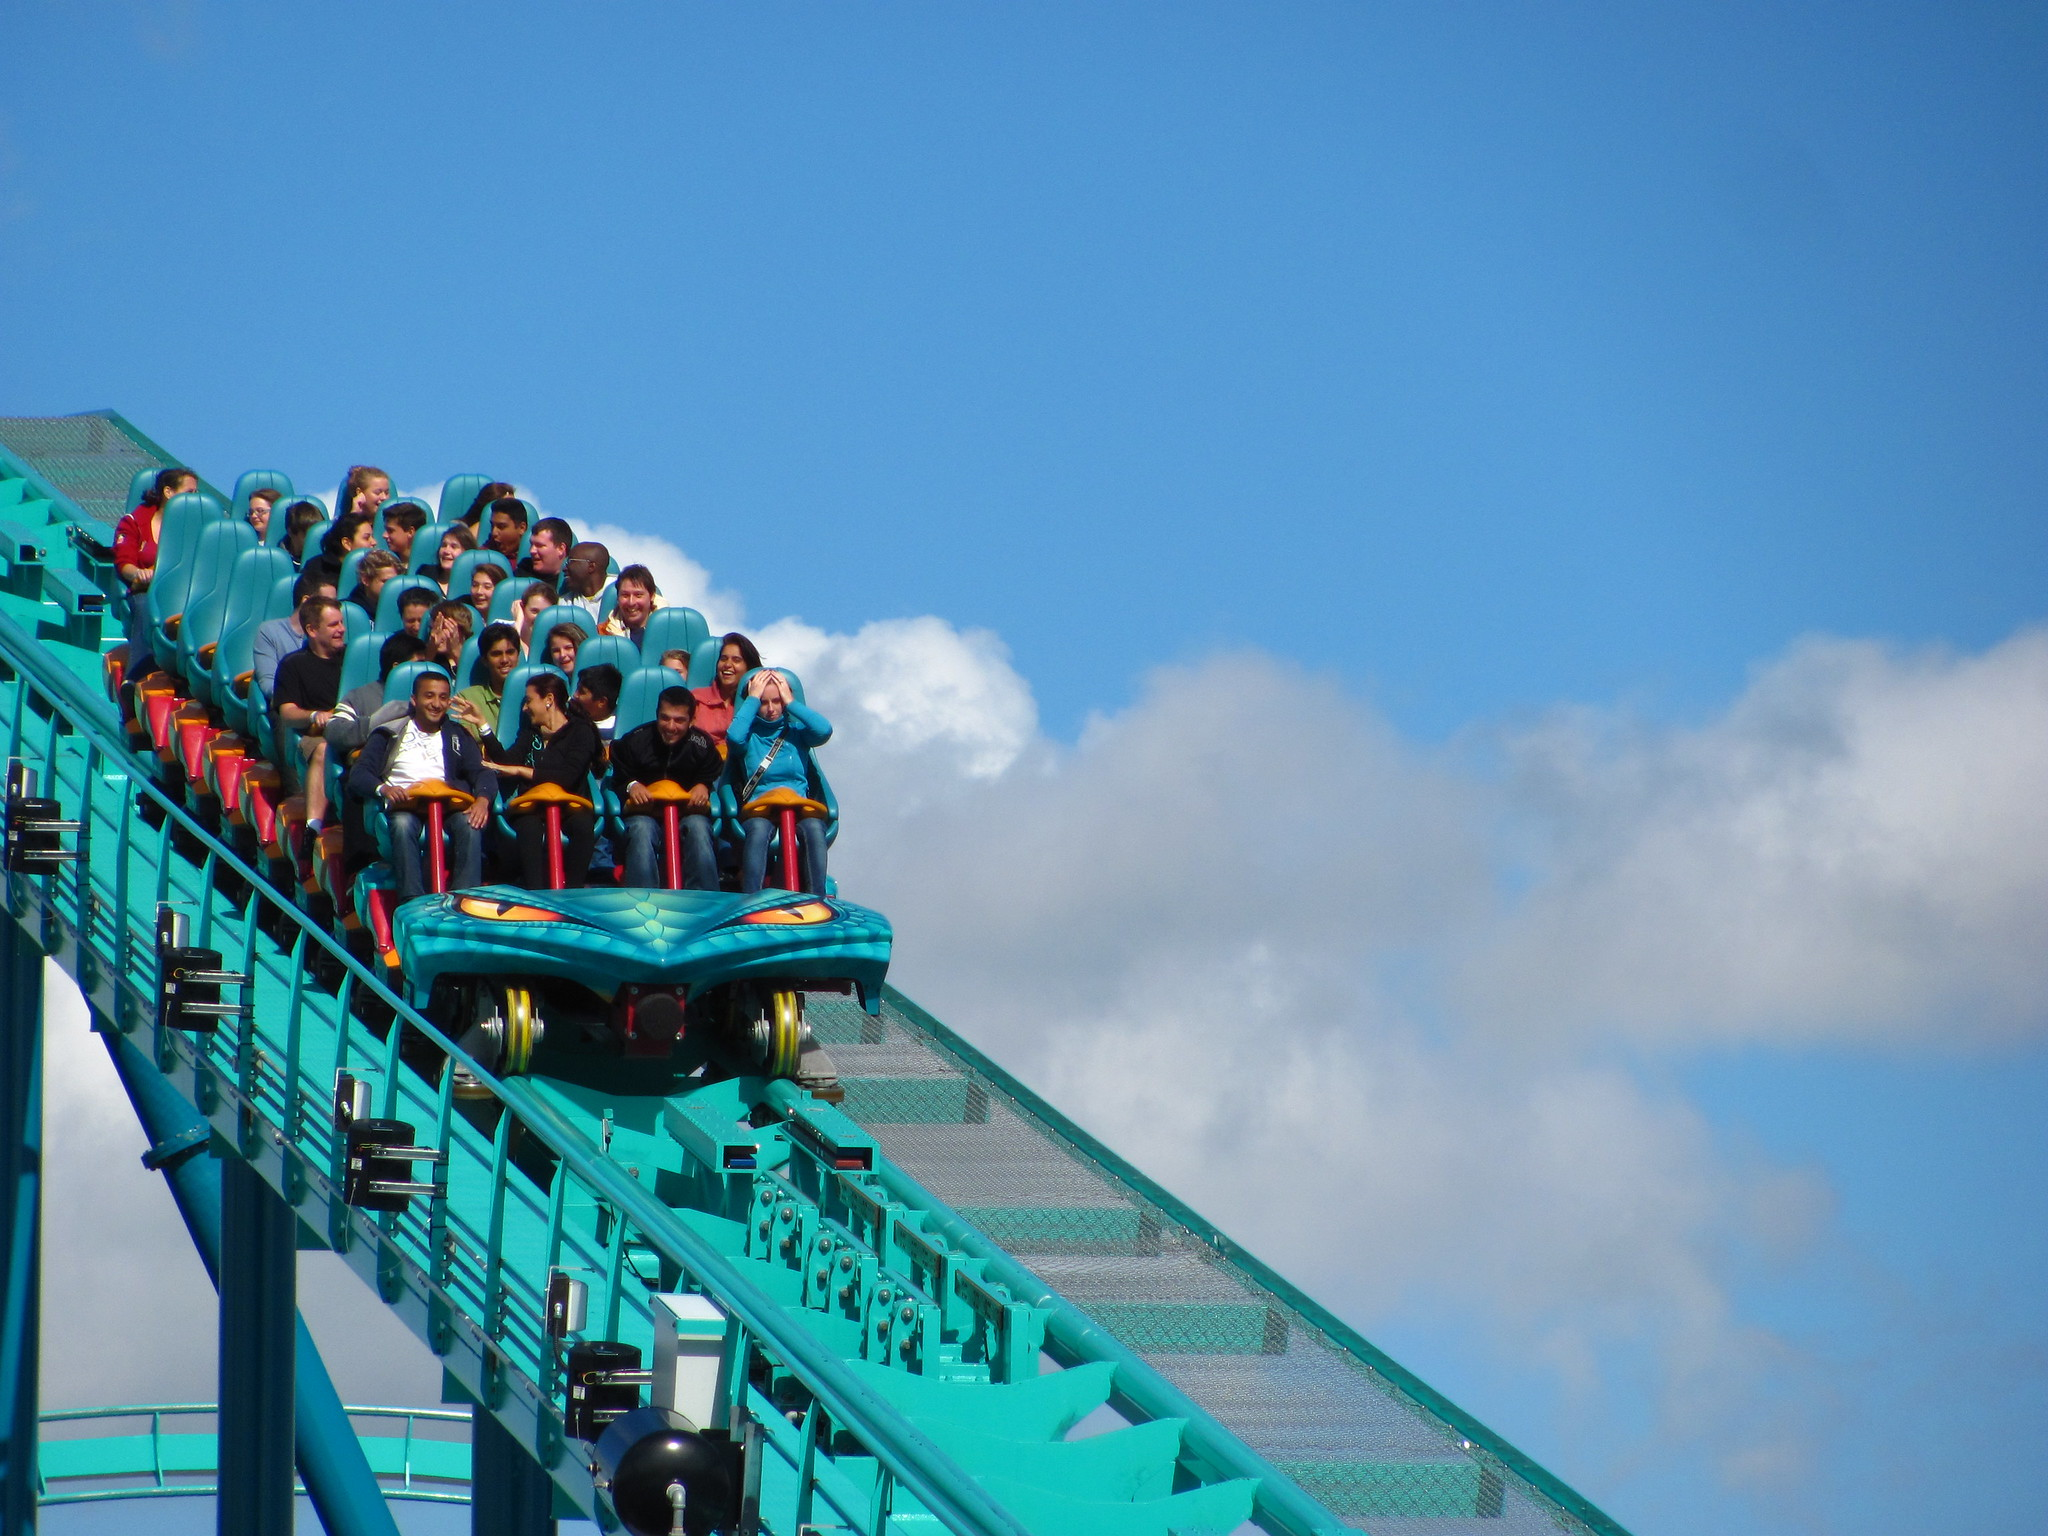 Top 11 Fastest Roller Coasters in the World